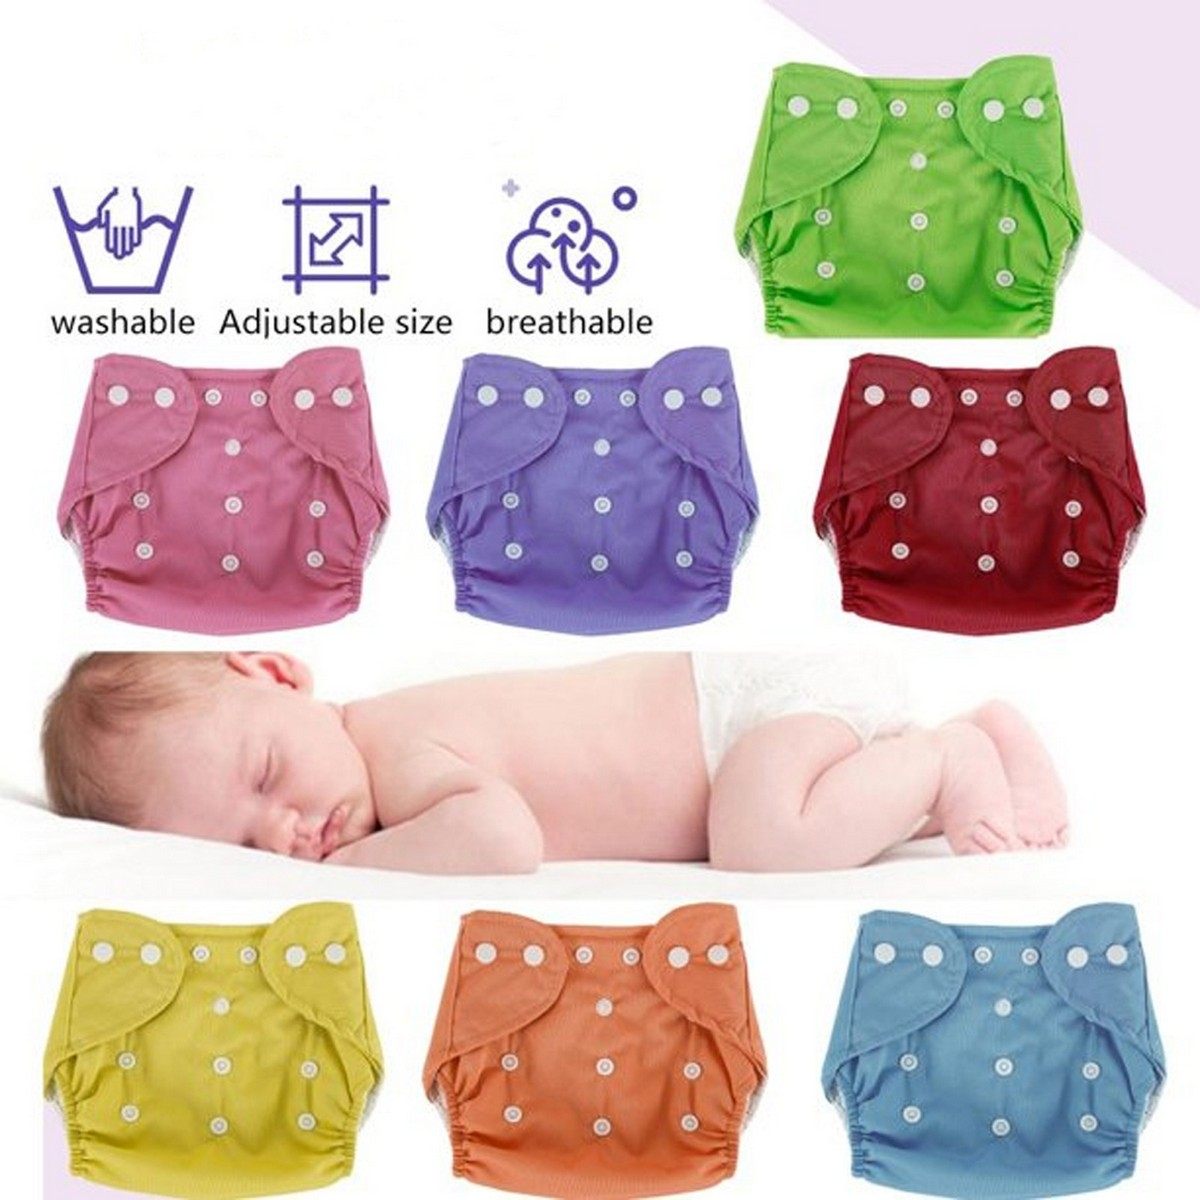 CHIEEA Reusable ADjustable 0 To 24 Months Old Baby Washable Diapers With Absorbent Insert